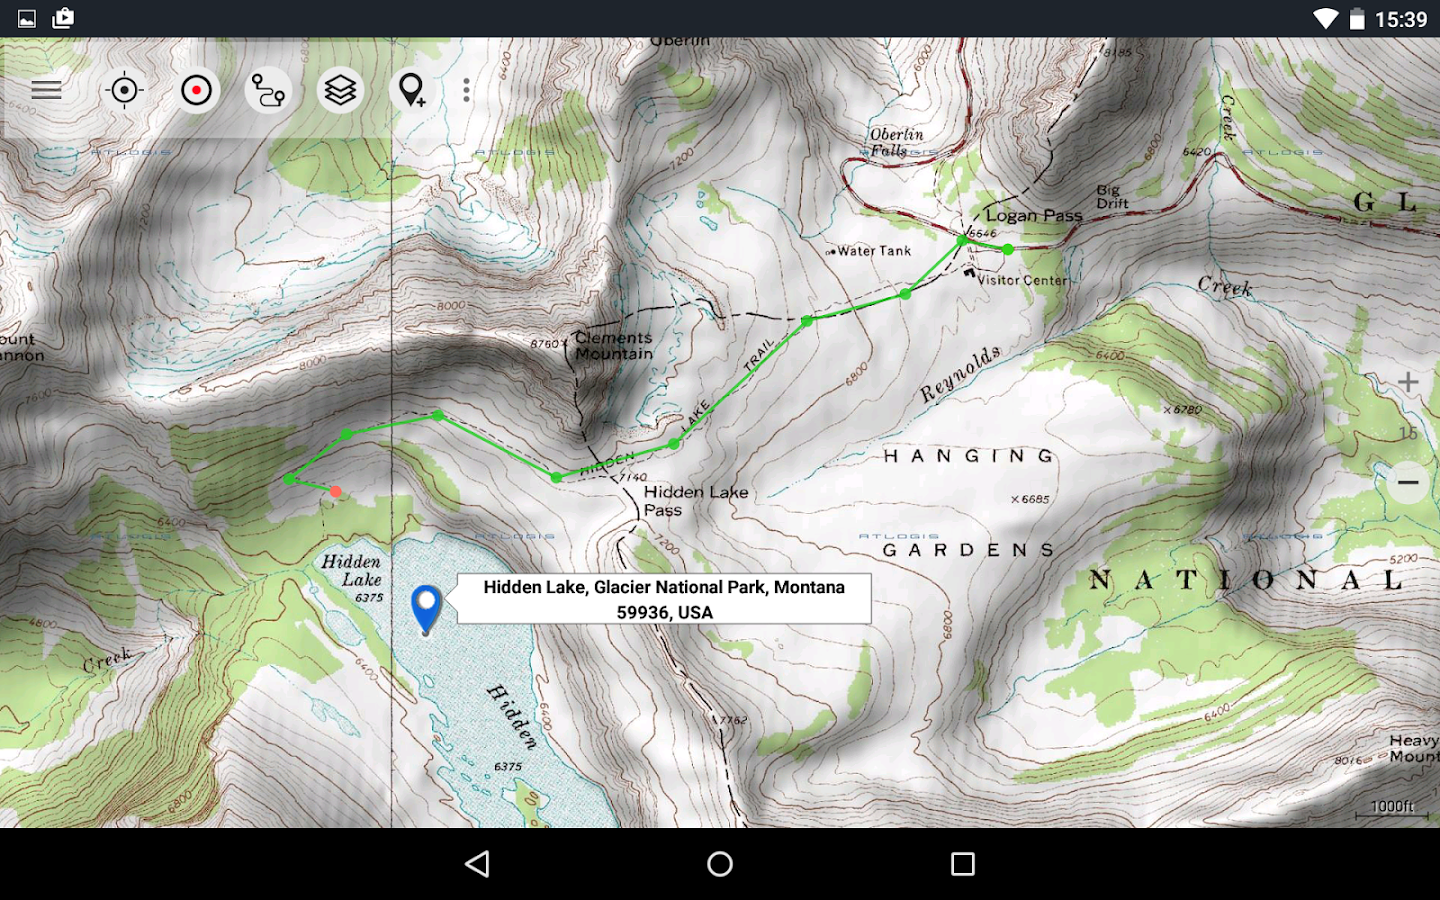 US Topo Maps Pro Android Apps On Google Play - Us elevation map google